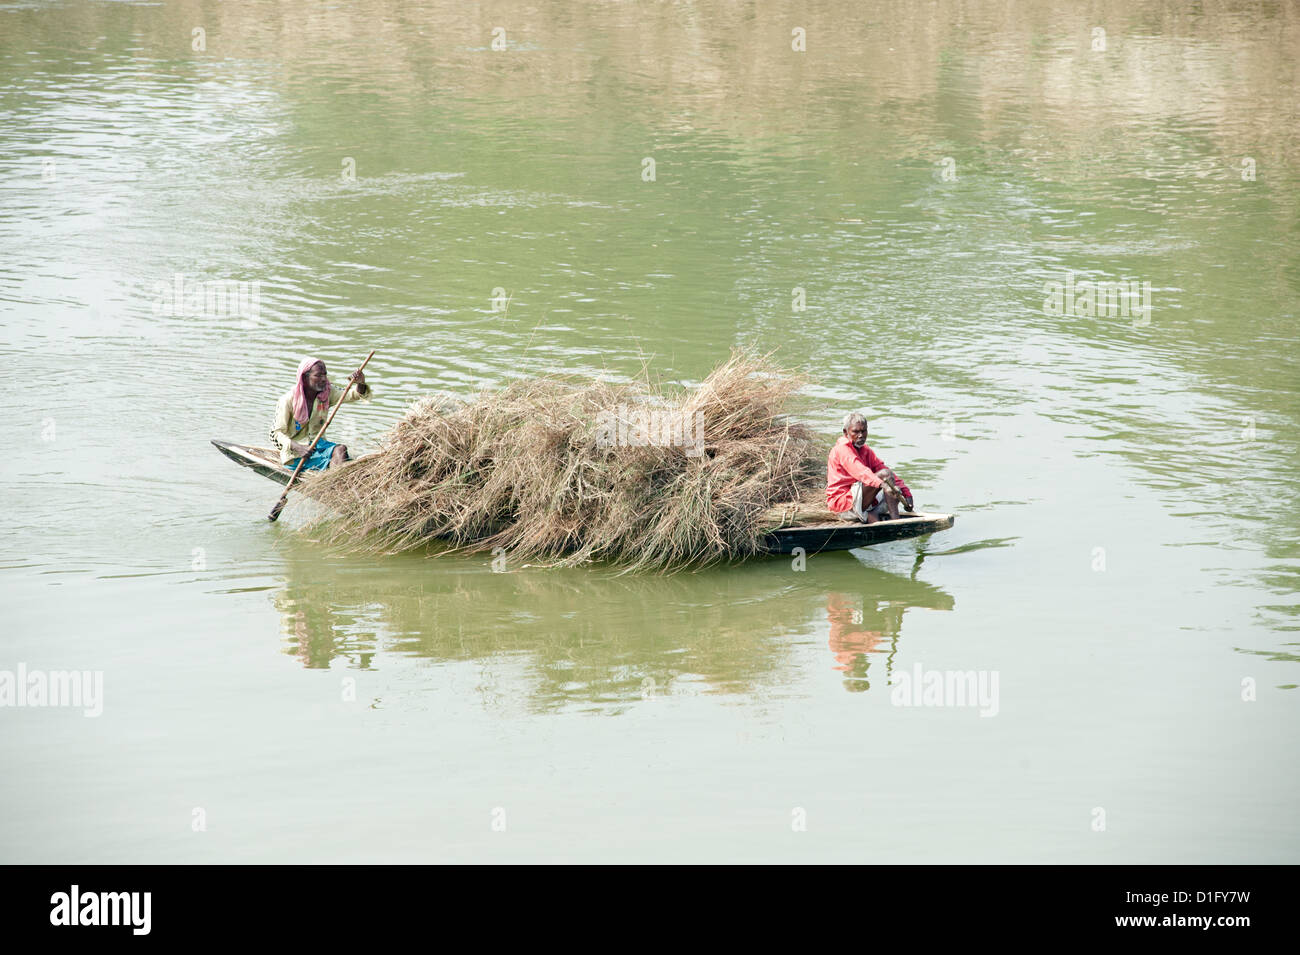 Boatmen paddling wooden boat laden with straw across the River Hugli (River Hooghly), rural West Bengal, India, - Stock Image